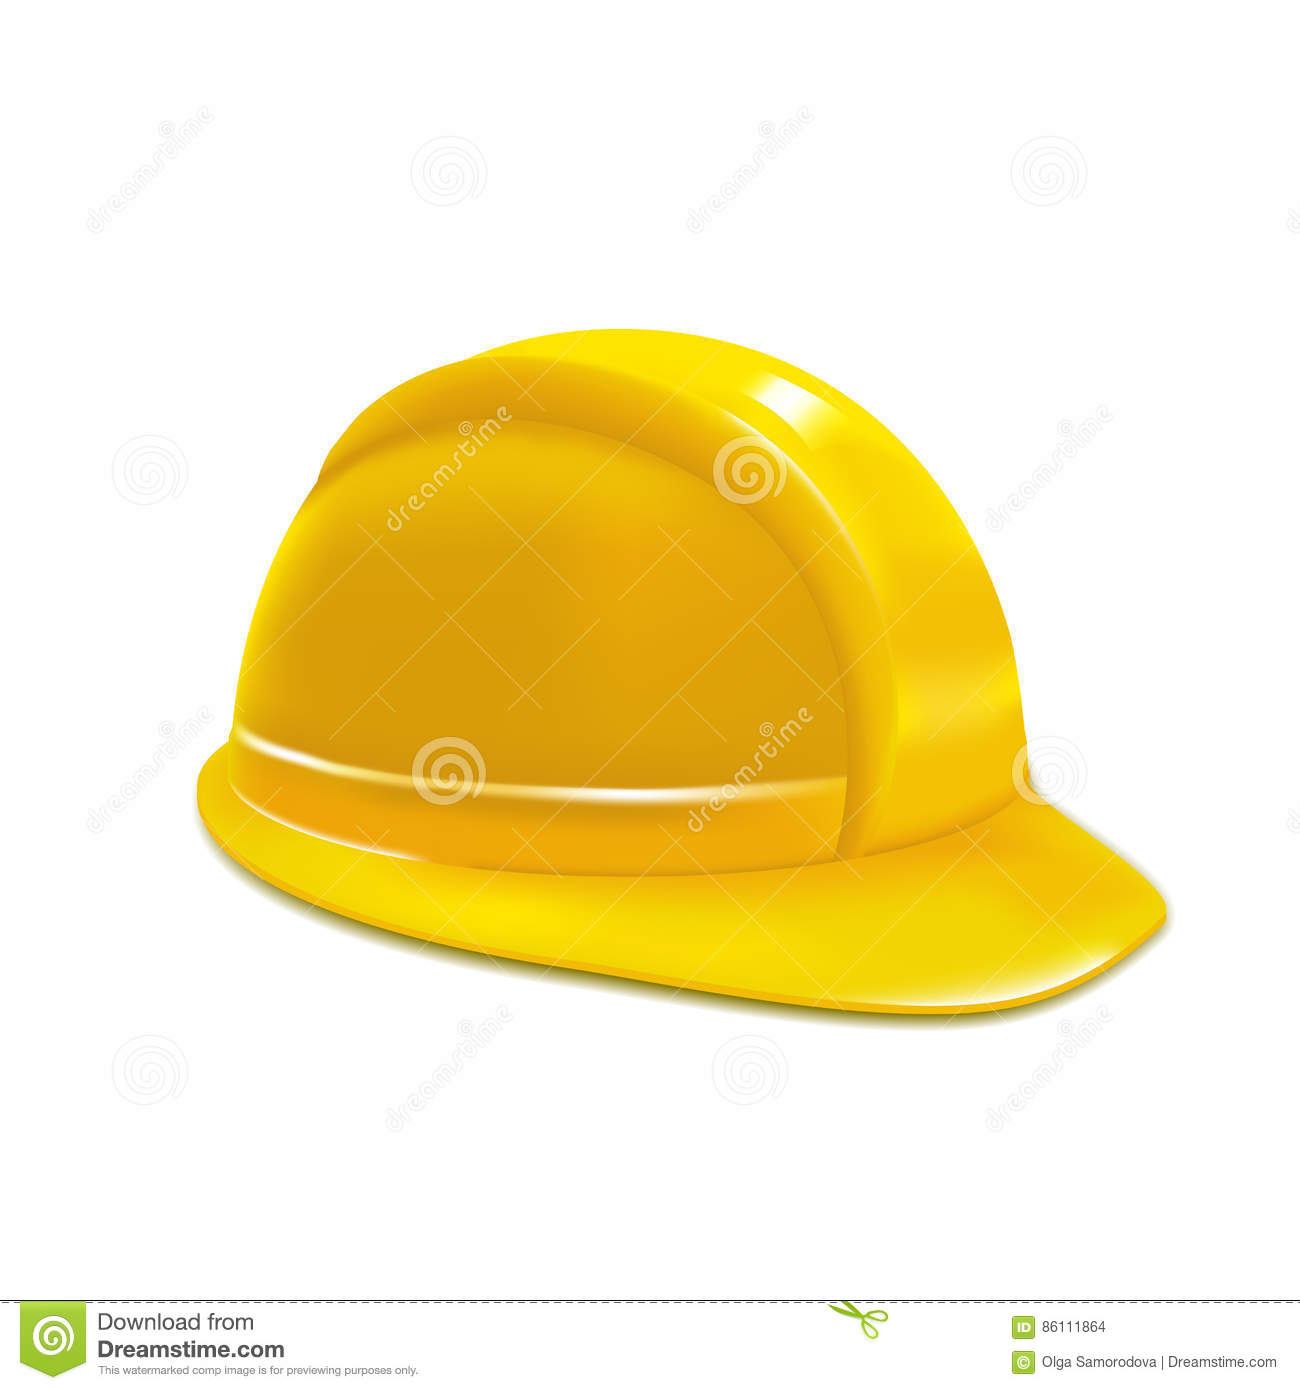 ab3a14f4 Realistic Construction or Working Safety Yellow Helmet or Hat Design  Element Web. Vector illustration